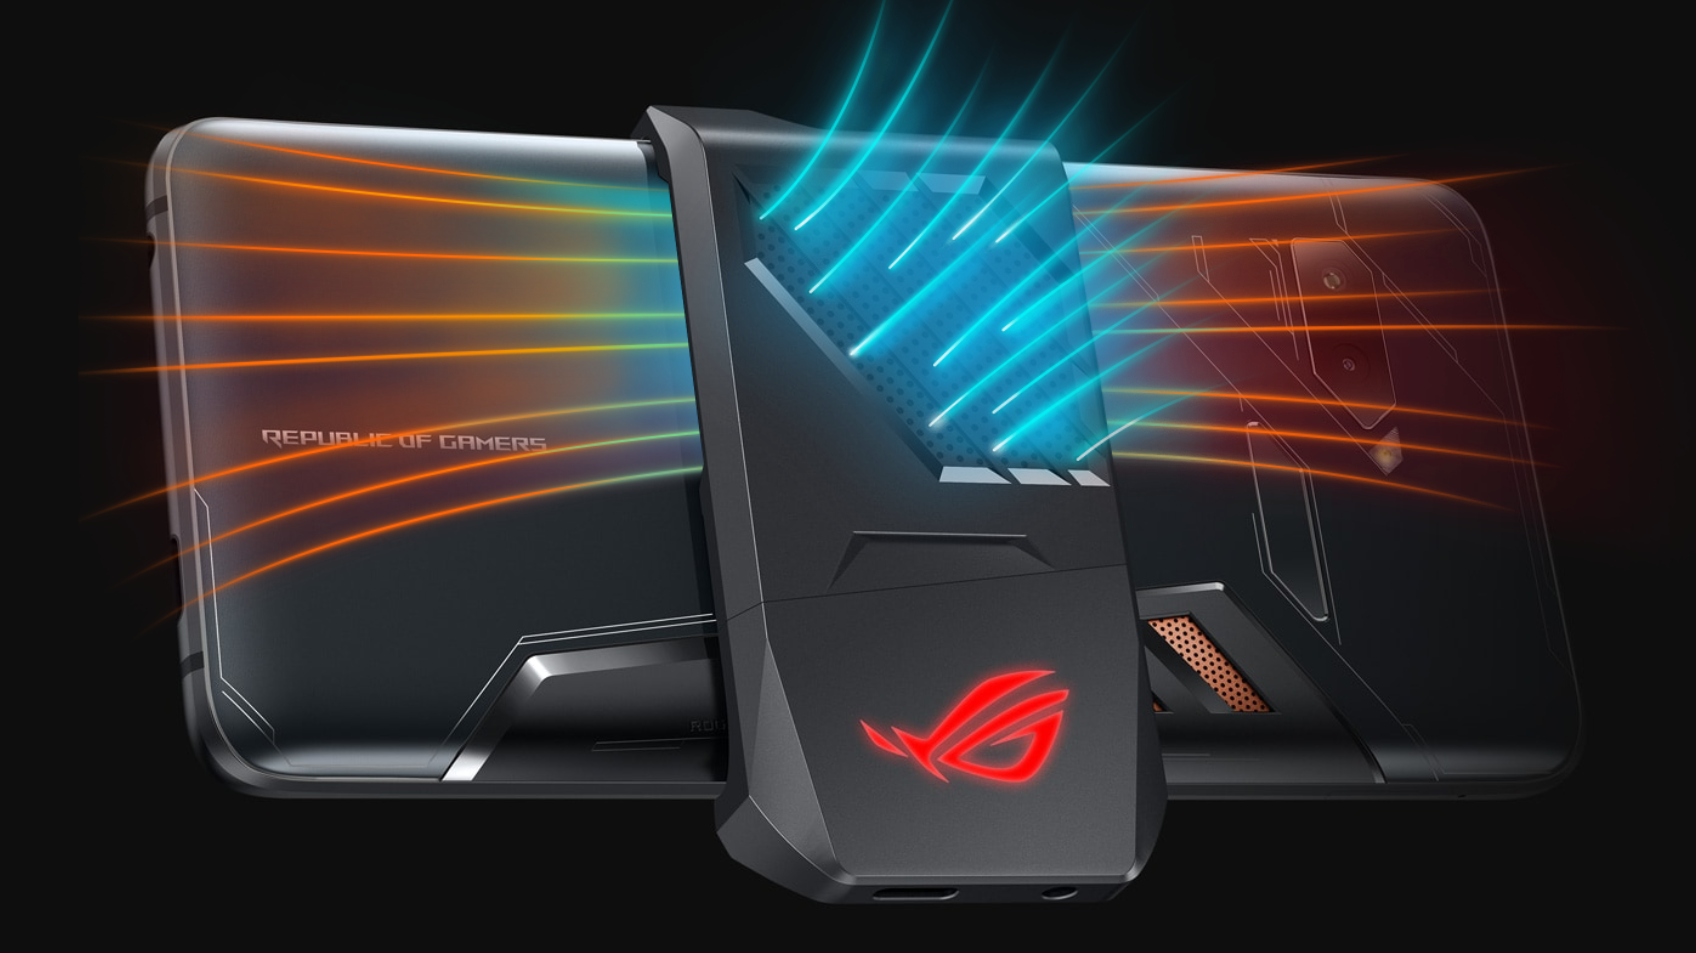 asus, rog phone, gaming, mobile gaming, dock, accessory